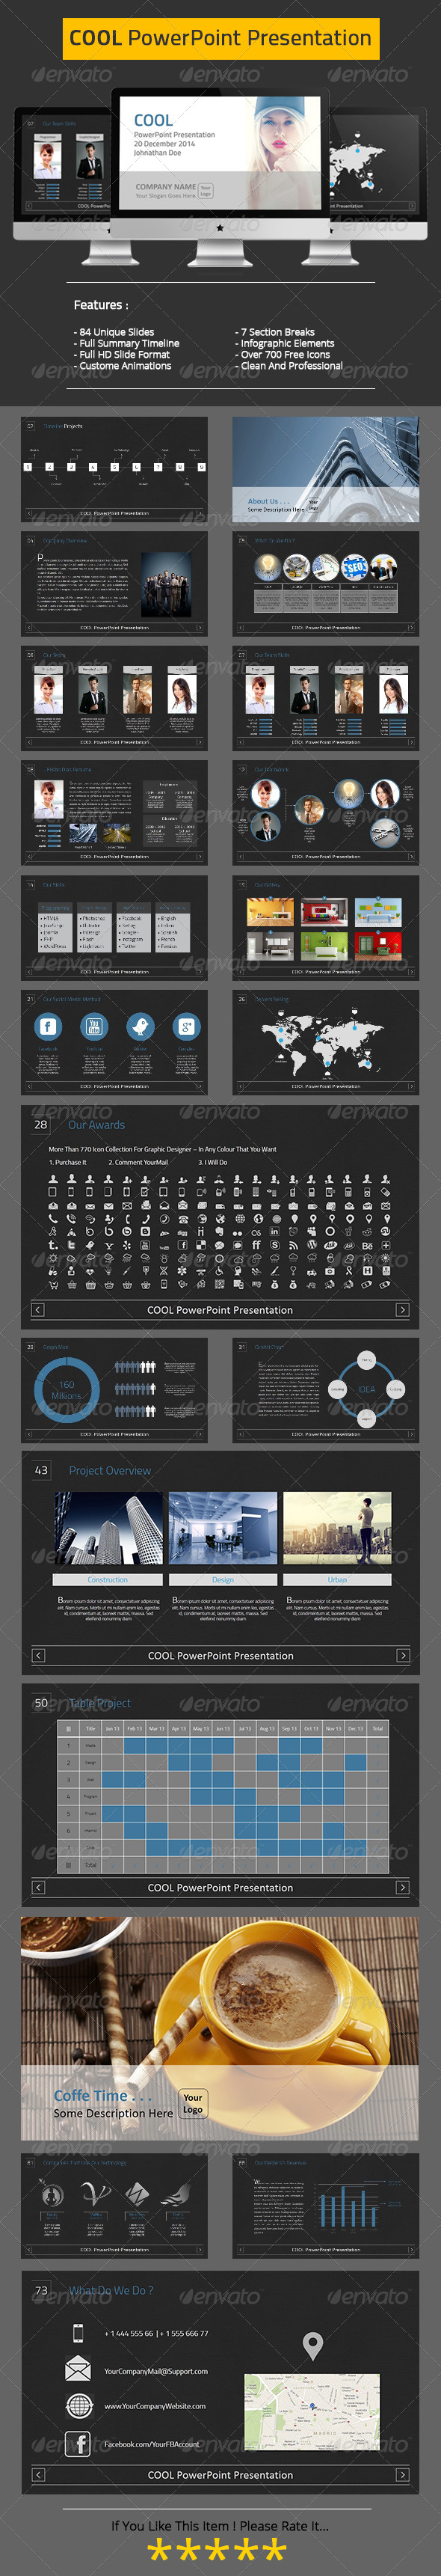 GraphicRiver COOL PowerPoint Presentation 6371127